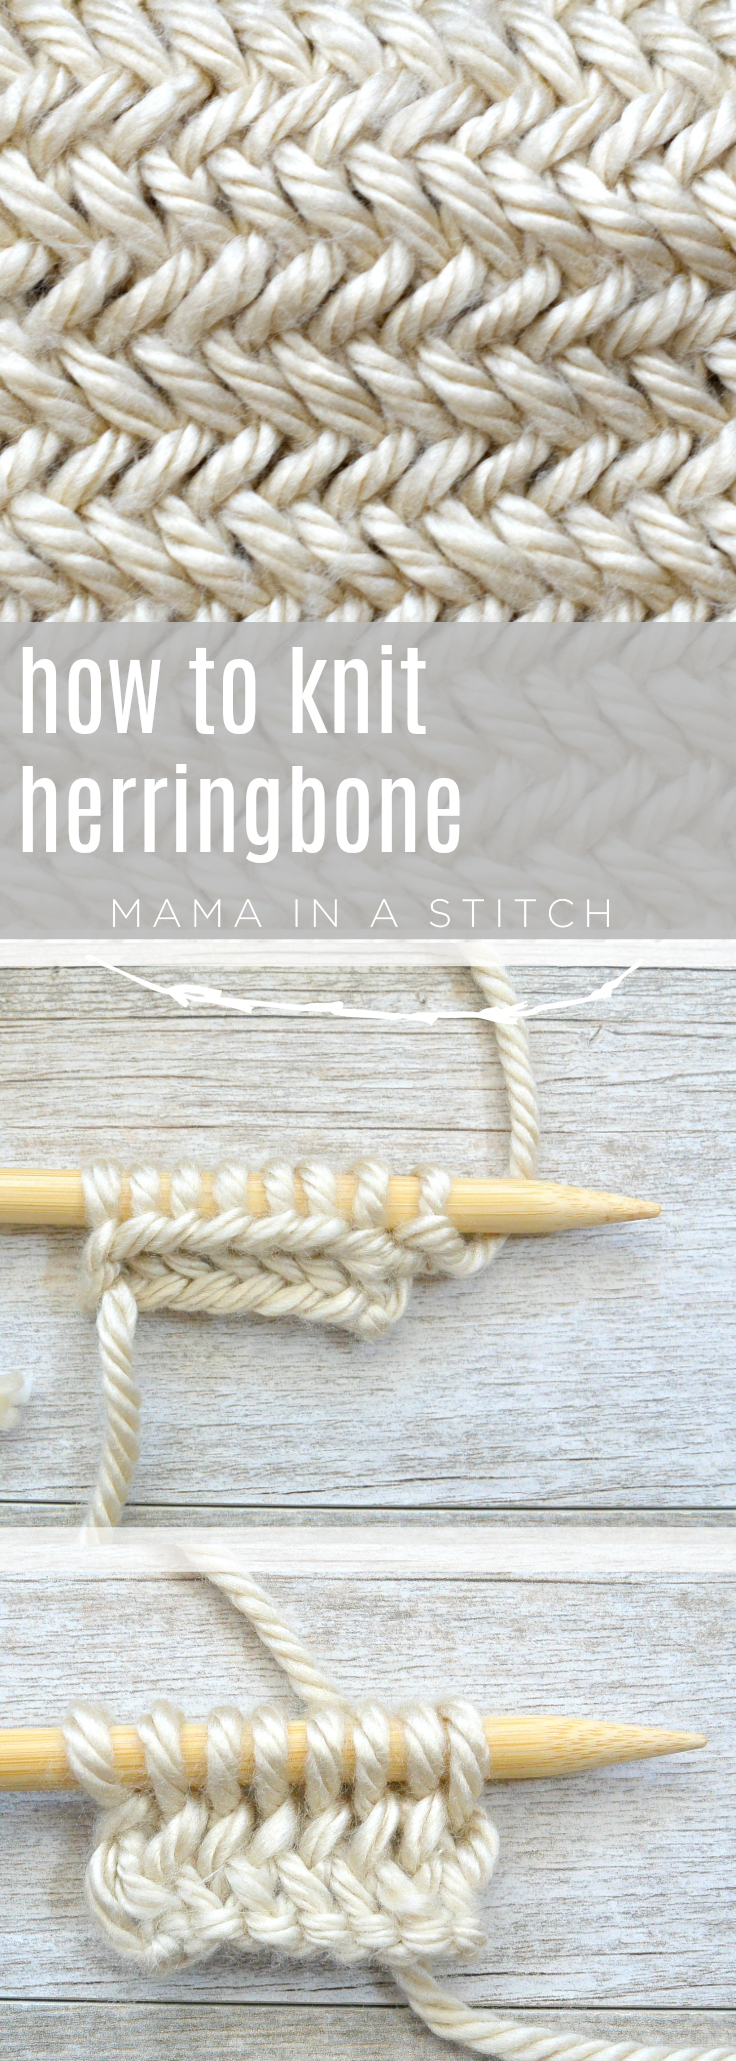 This picture tutorial will show you how to knit herringbone and there's also useful tips and a link to a video as well! #freeknittingpattern #tuturial #knittingpattern